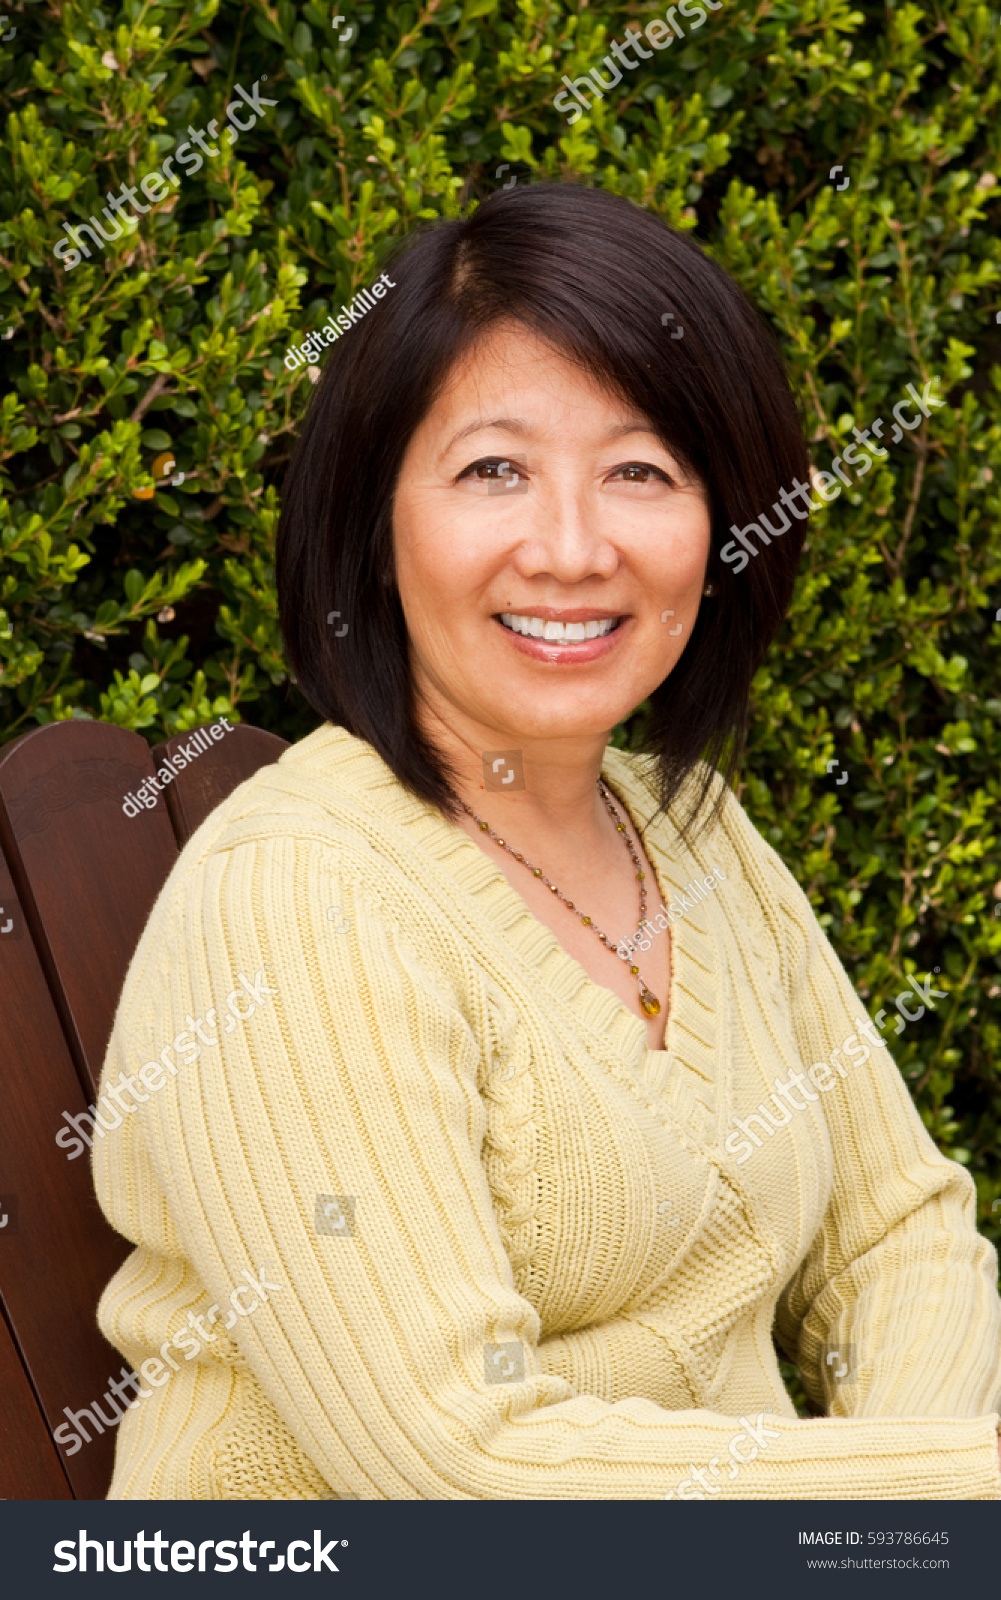 portrait mature asian woman smiling stock photo (100% legal